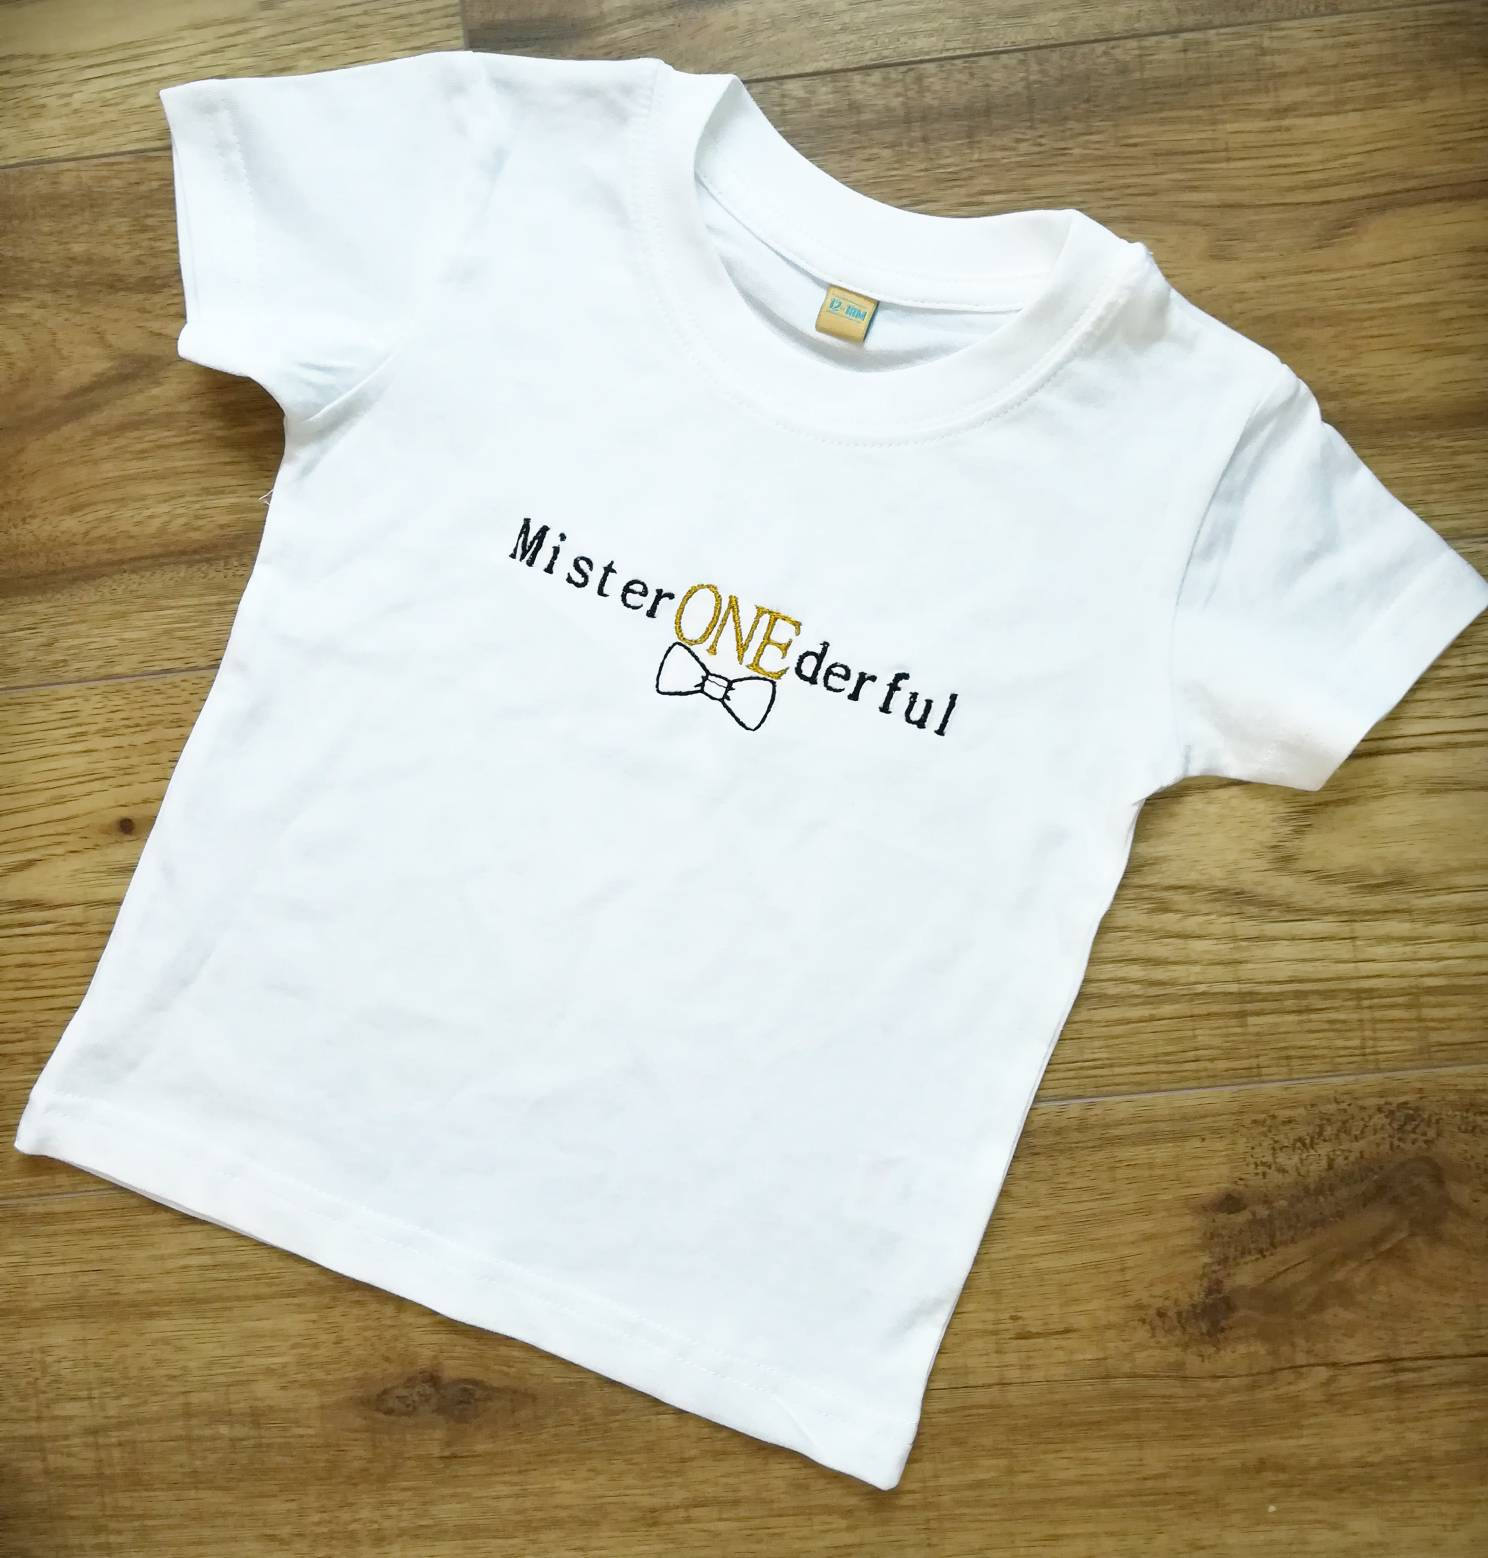 Mr Onederfulbirthday T Shirt1st Birthday Shirtboys 1st